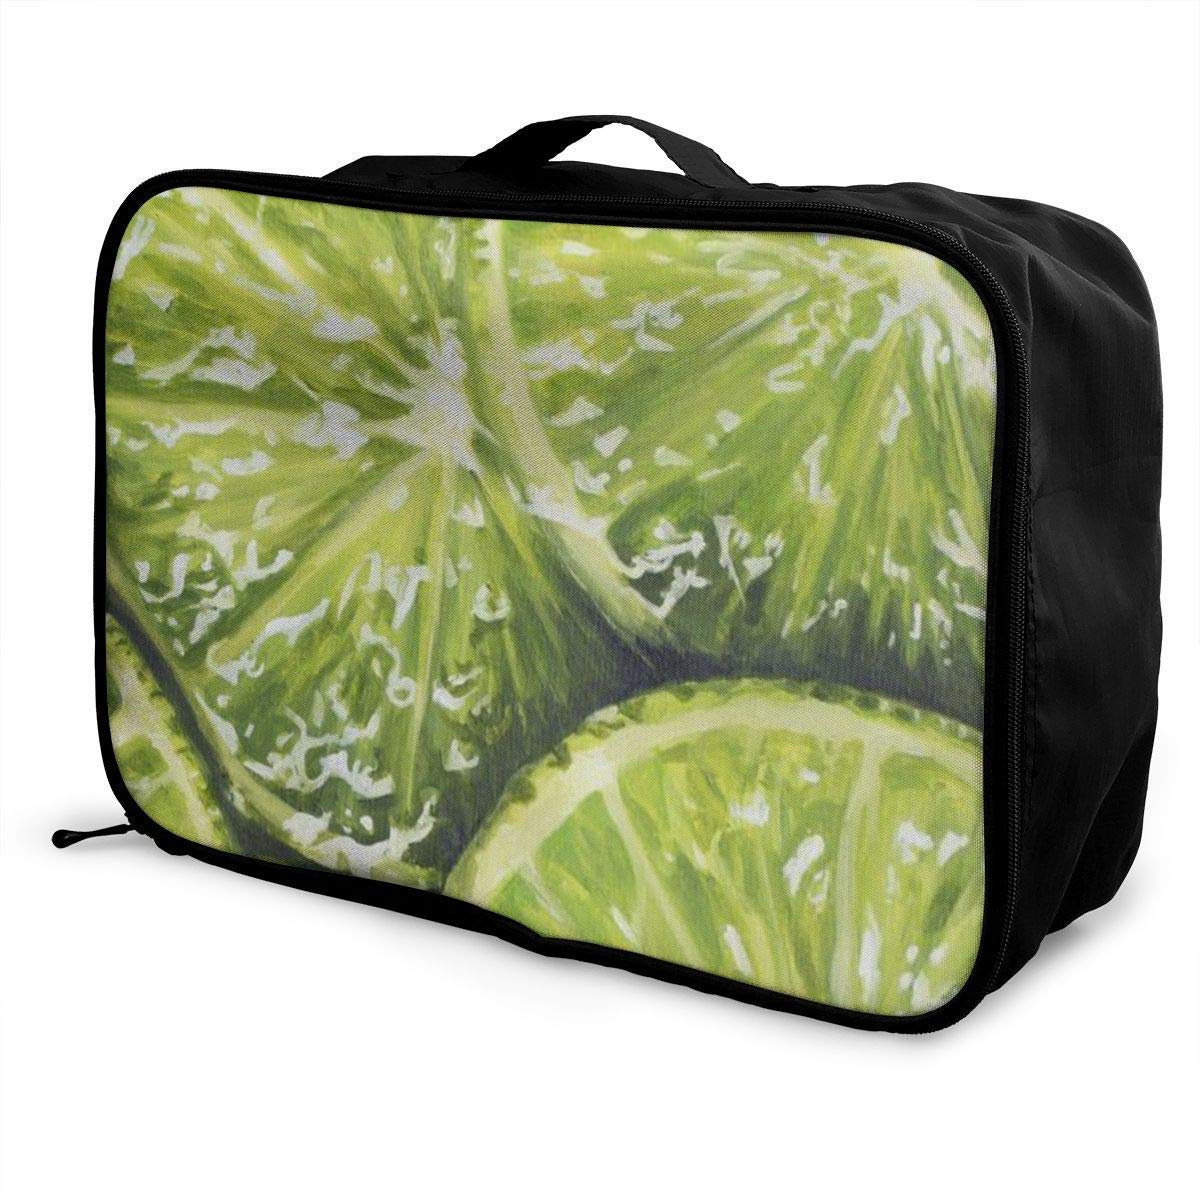 JTRVW Luggage Bags for Travel Portable Luggage Duffel Bag Watermelon Lemon Travel Bags Carry-on in Trolley Handle